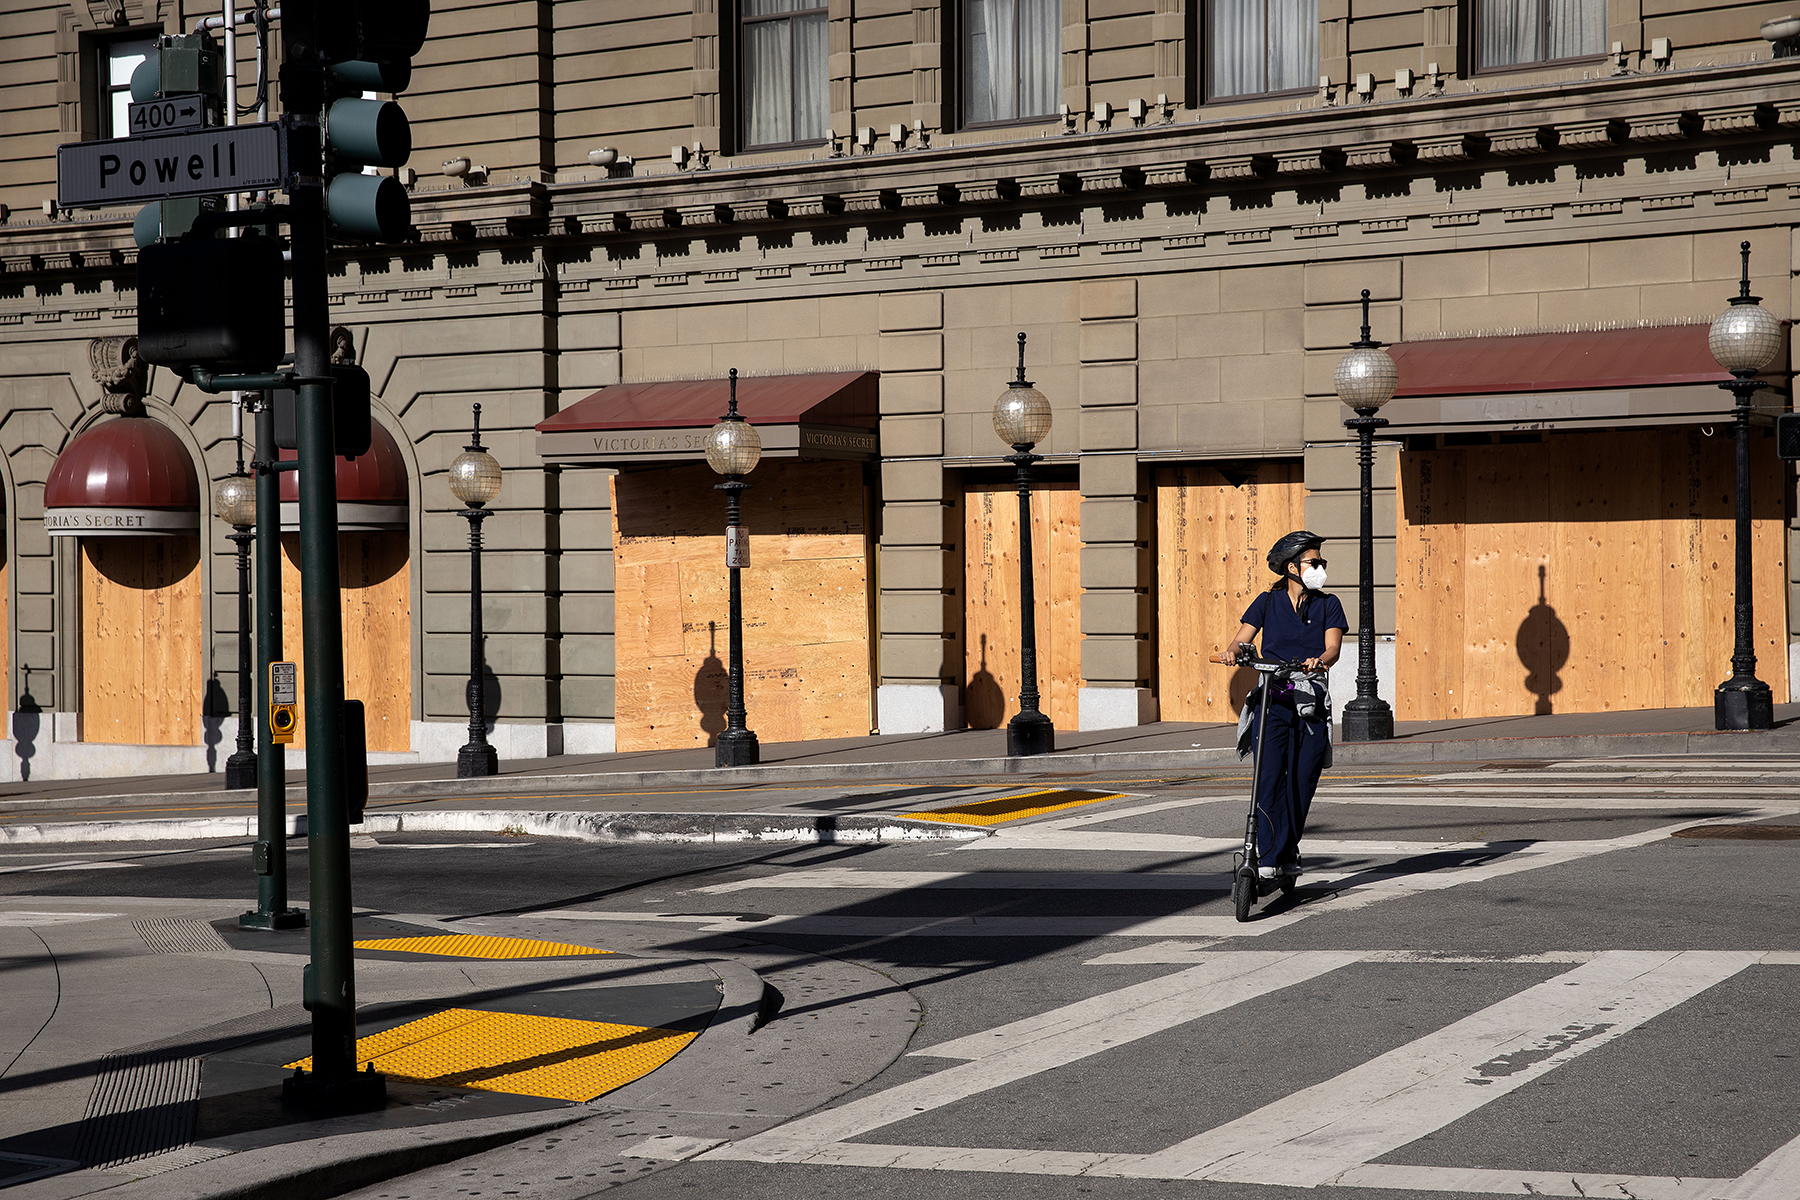 Corner of Powell and Post in Union Square in San Francisco, Calif., on Thursday, June 4, 2020. Stores were boarded up due to a combination of the COVID-19 pandemic and looting in connection with the protests of George Floyd's death. Union Square and its stores were decimated by looters on Saturday night and vehicle access to the area was blocked off for several blocks around the square.